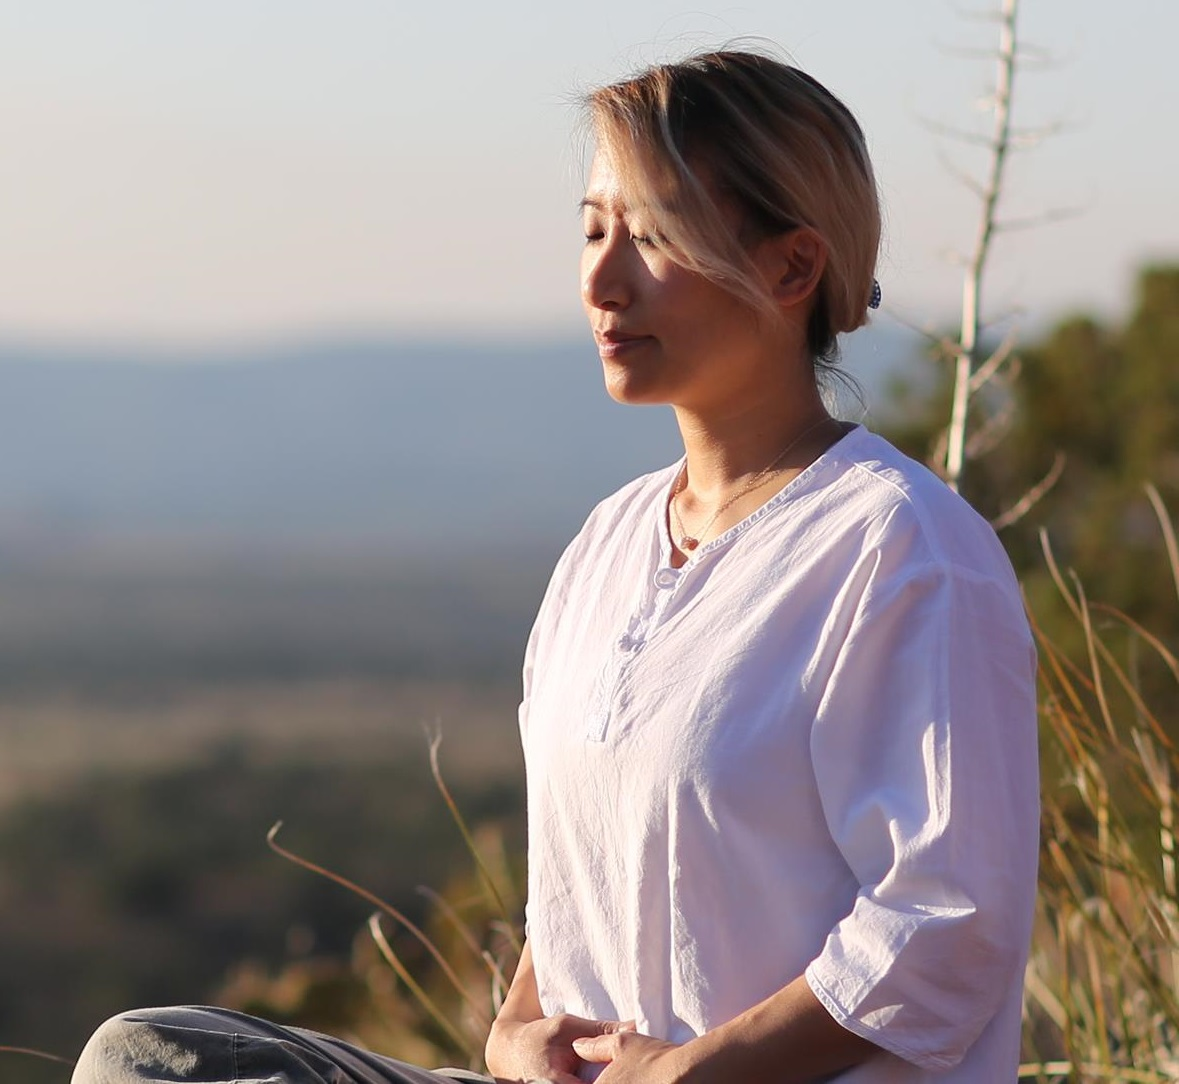 woman practicing breathing